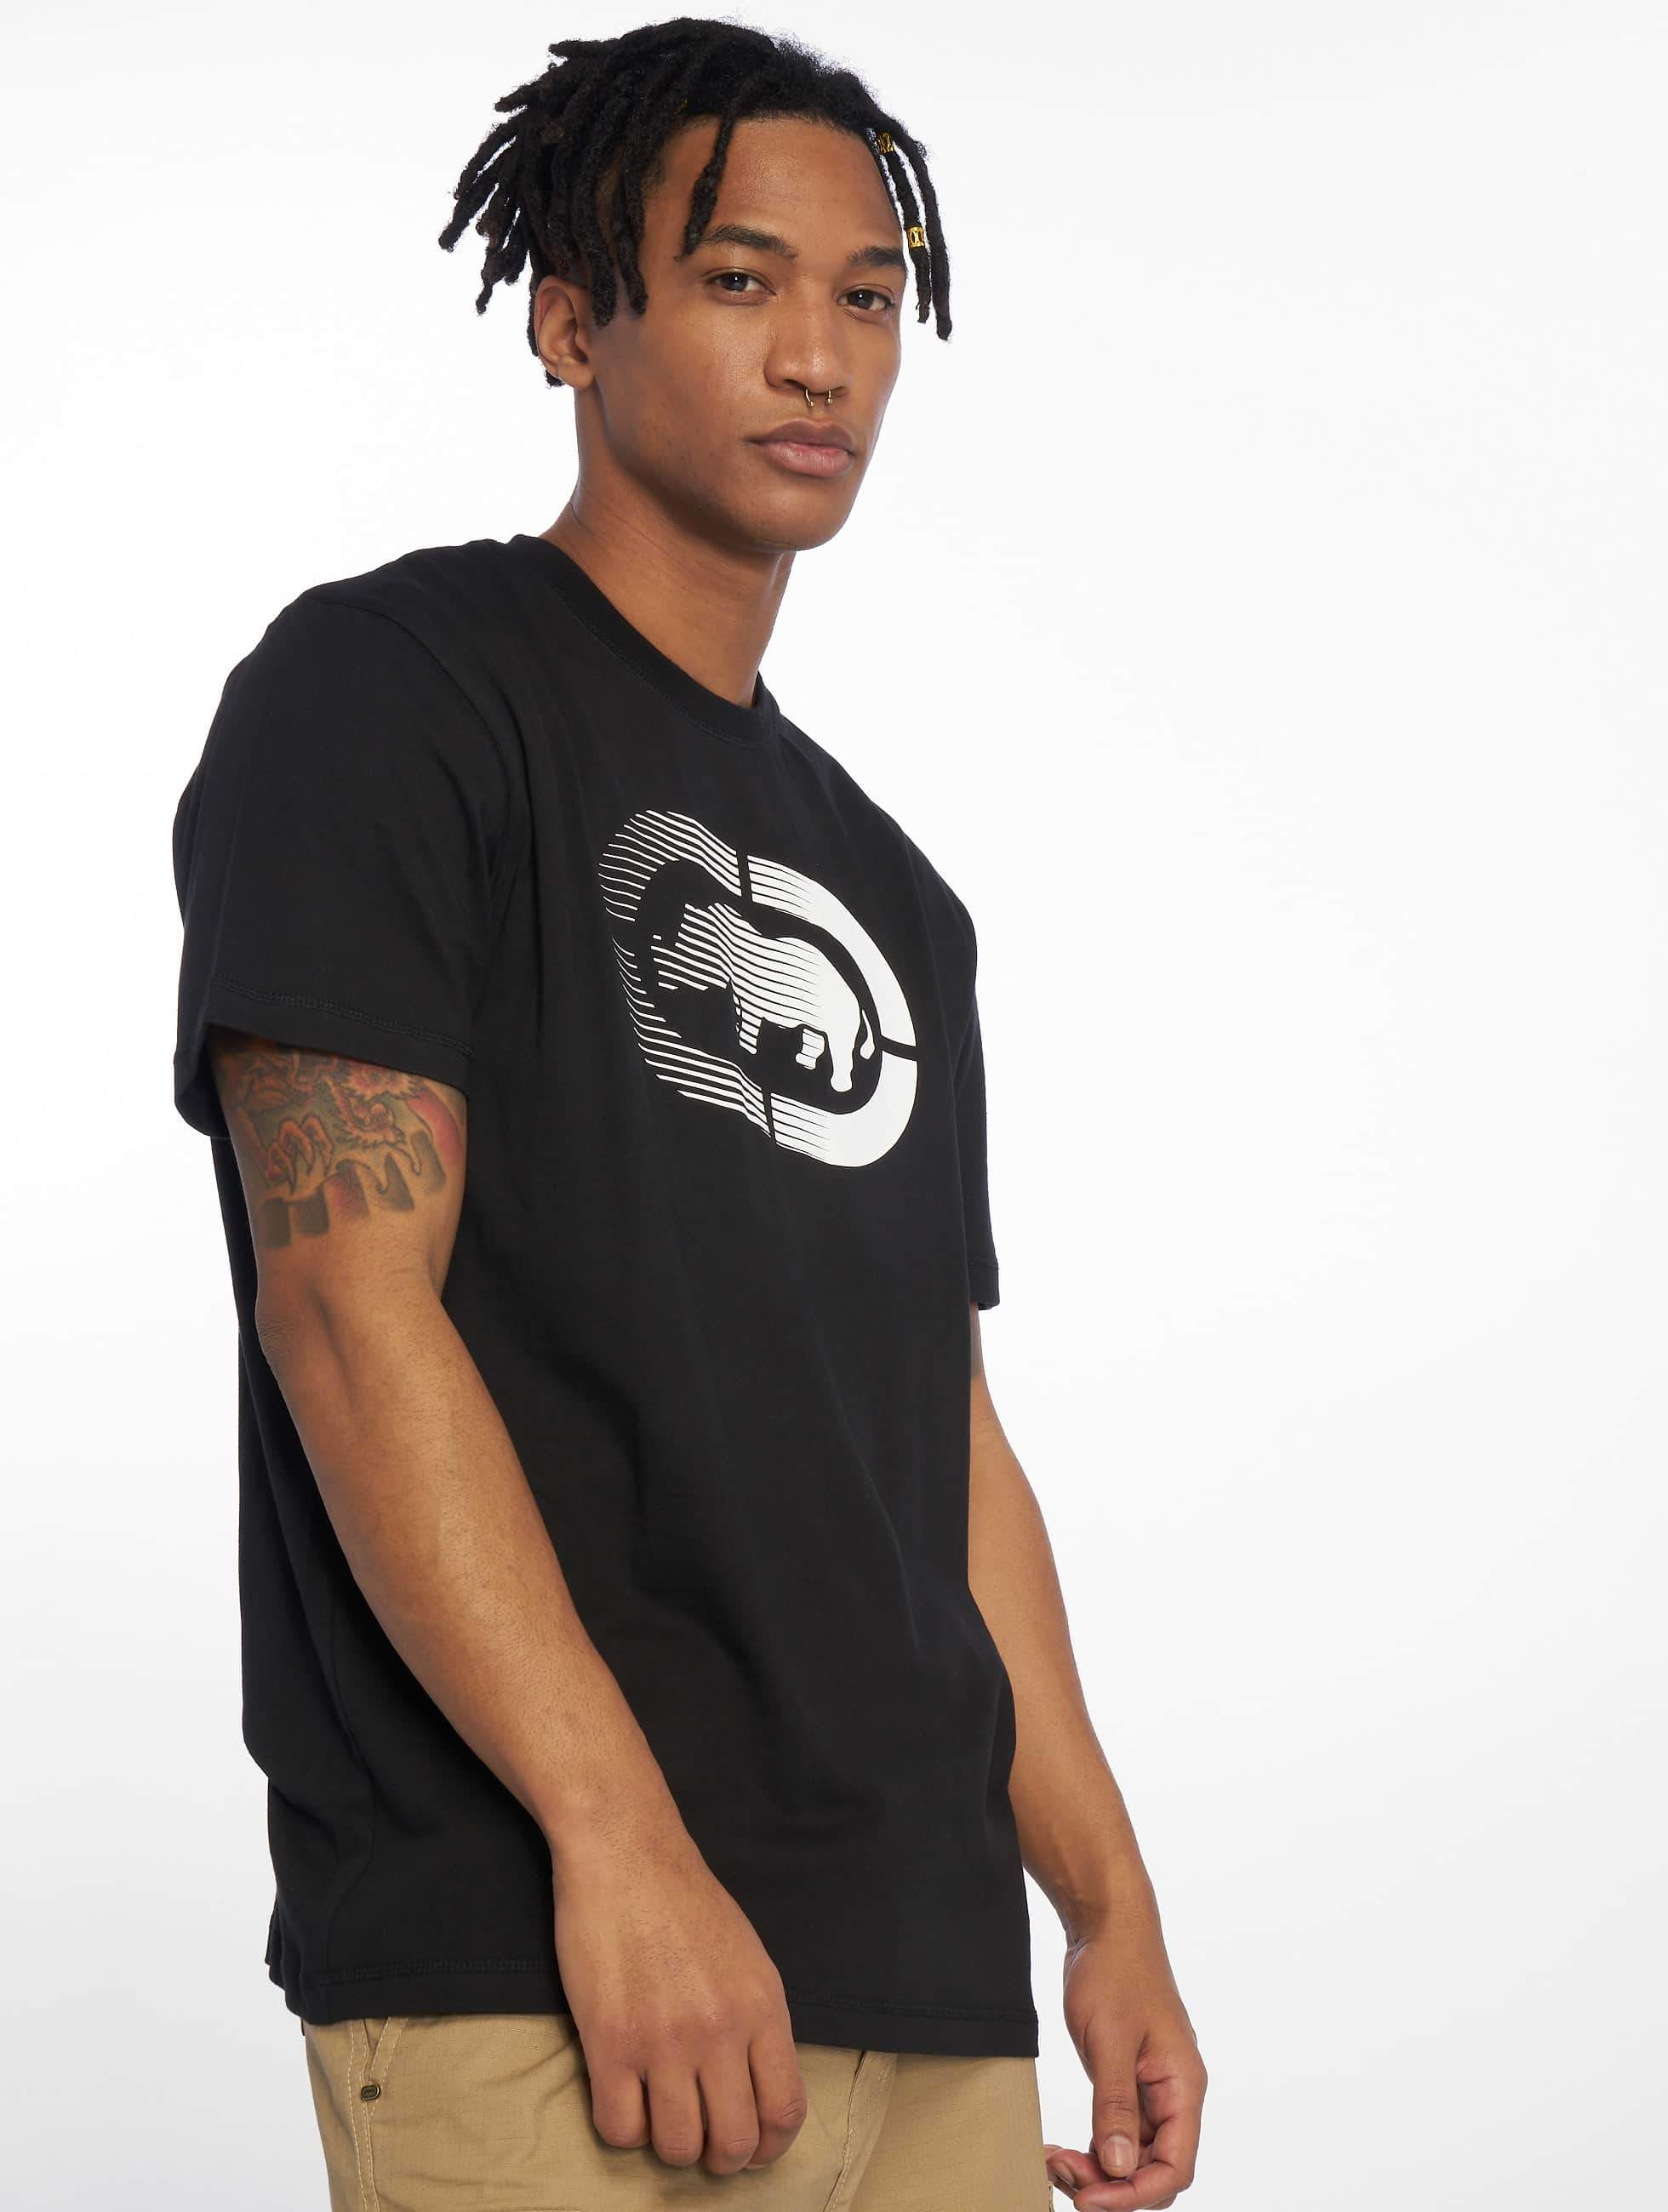 Ecko Unltd. / T-Shirt 5050 in black L